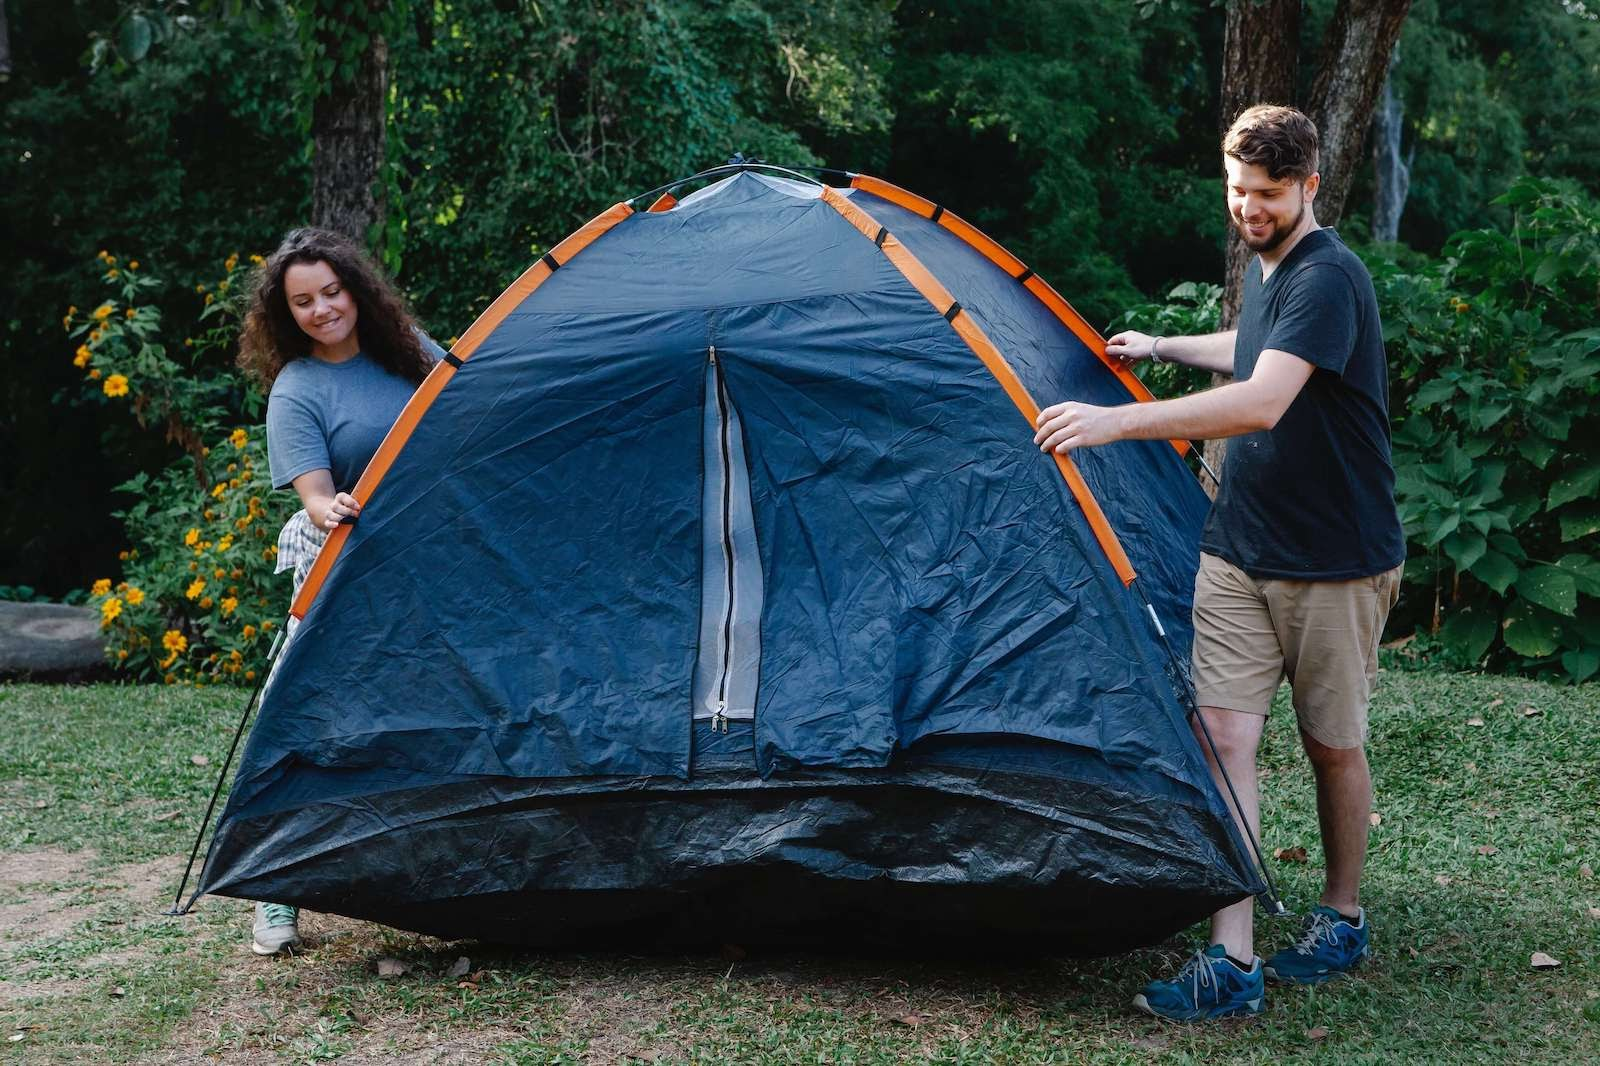 A couple setting up a tent in the grass